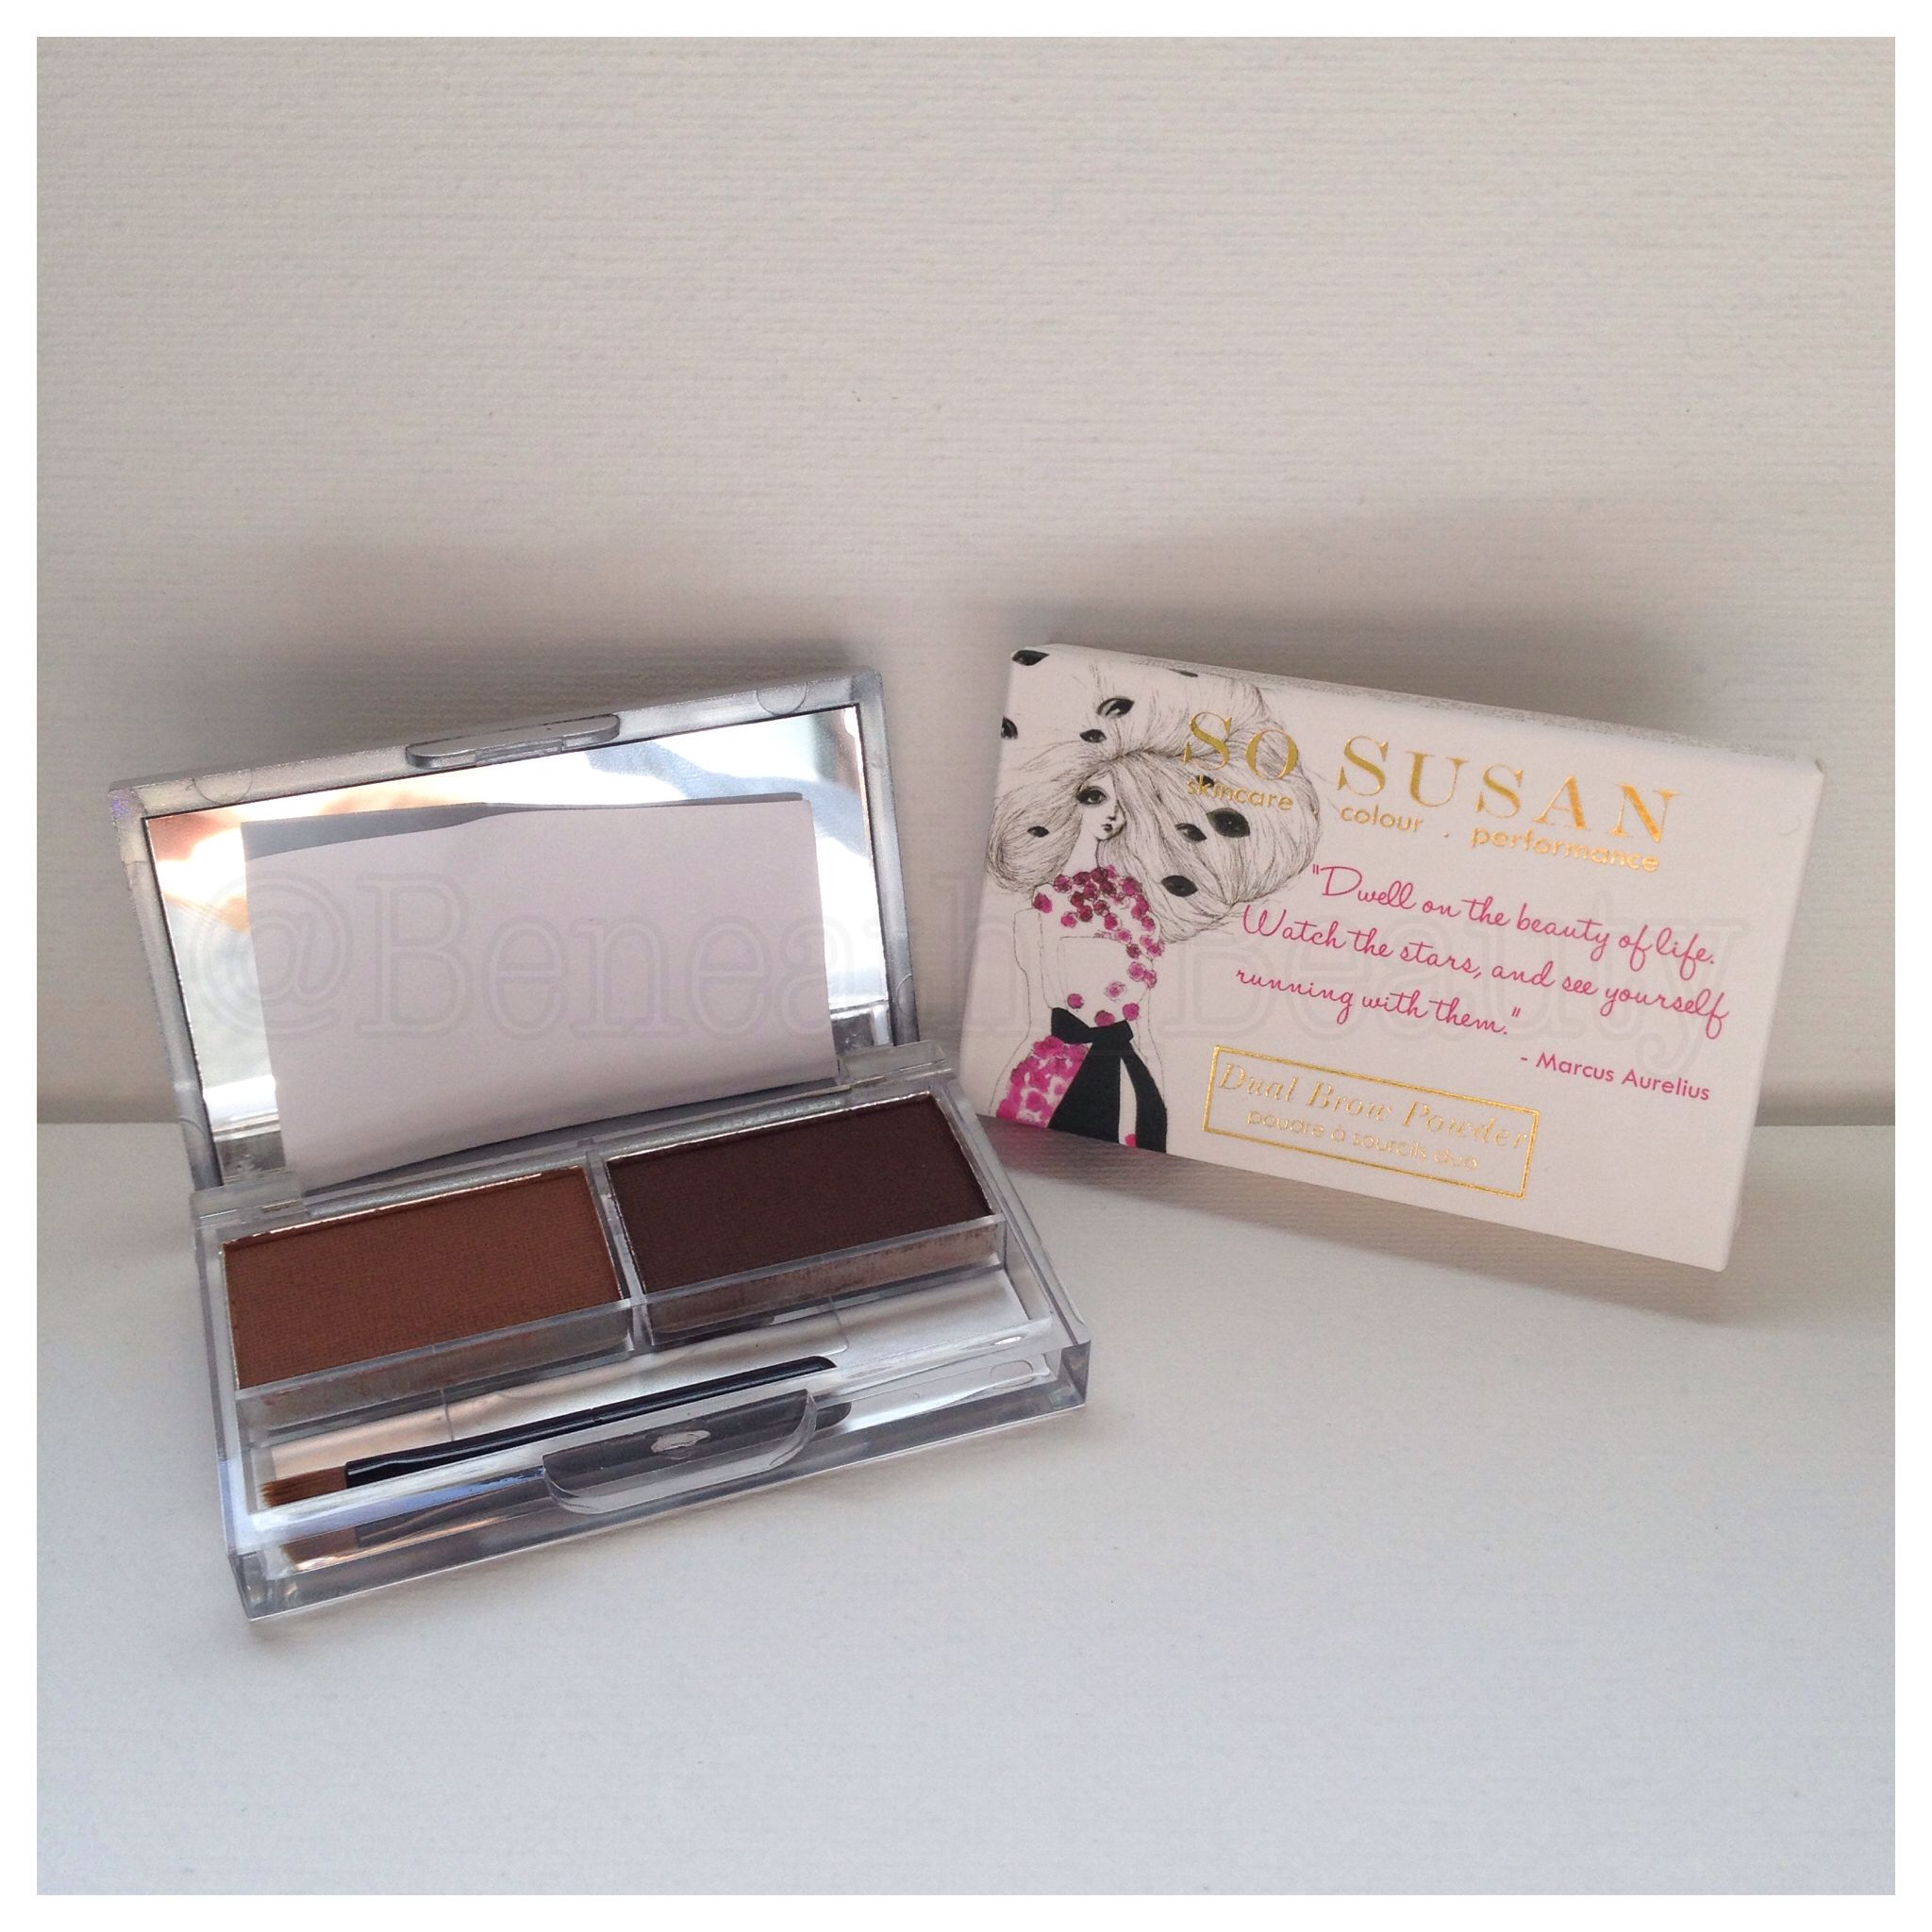 So Susan Cosmetics Brow Duo. Such gorgeous packaging!